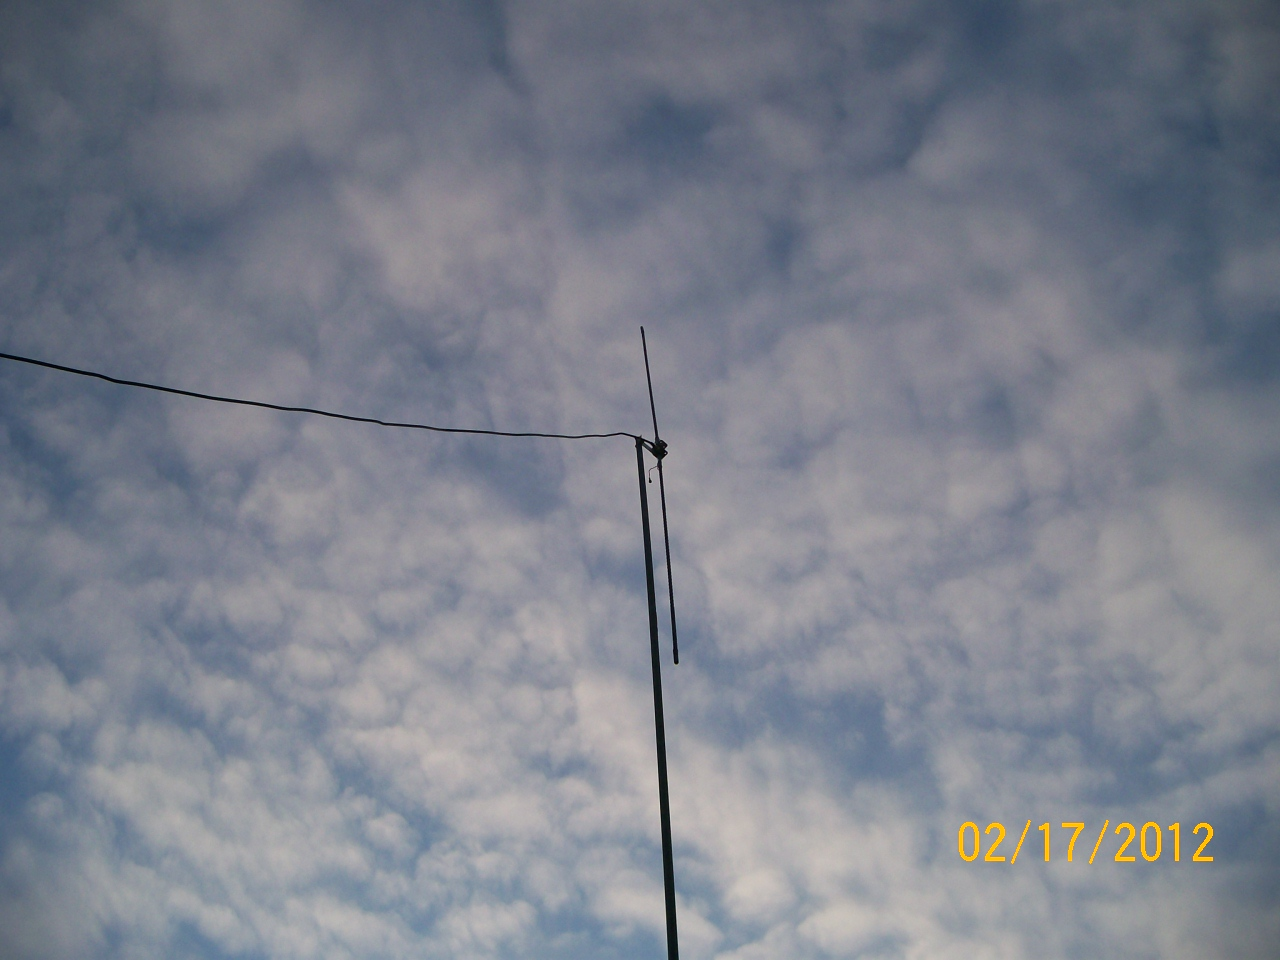 Stealthy Homebrew Vertical Dipole Antenna – Testimonial | VW BLVD